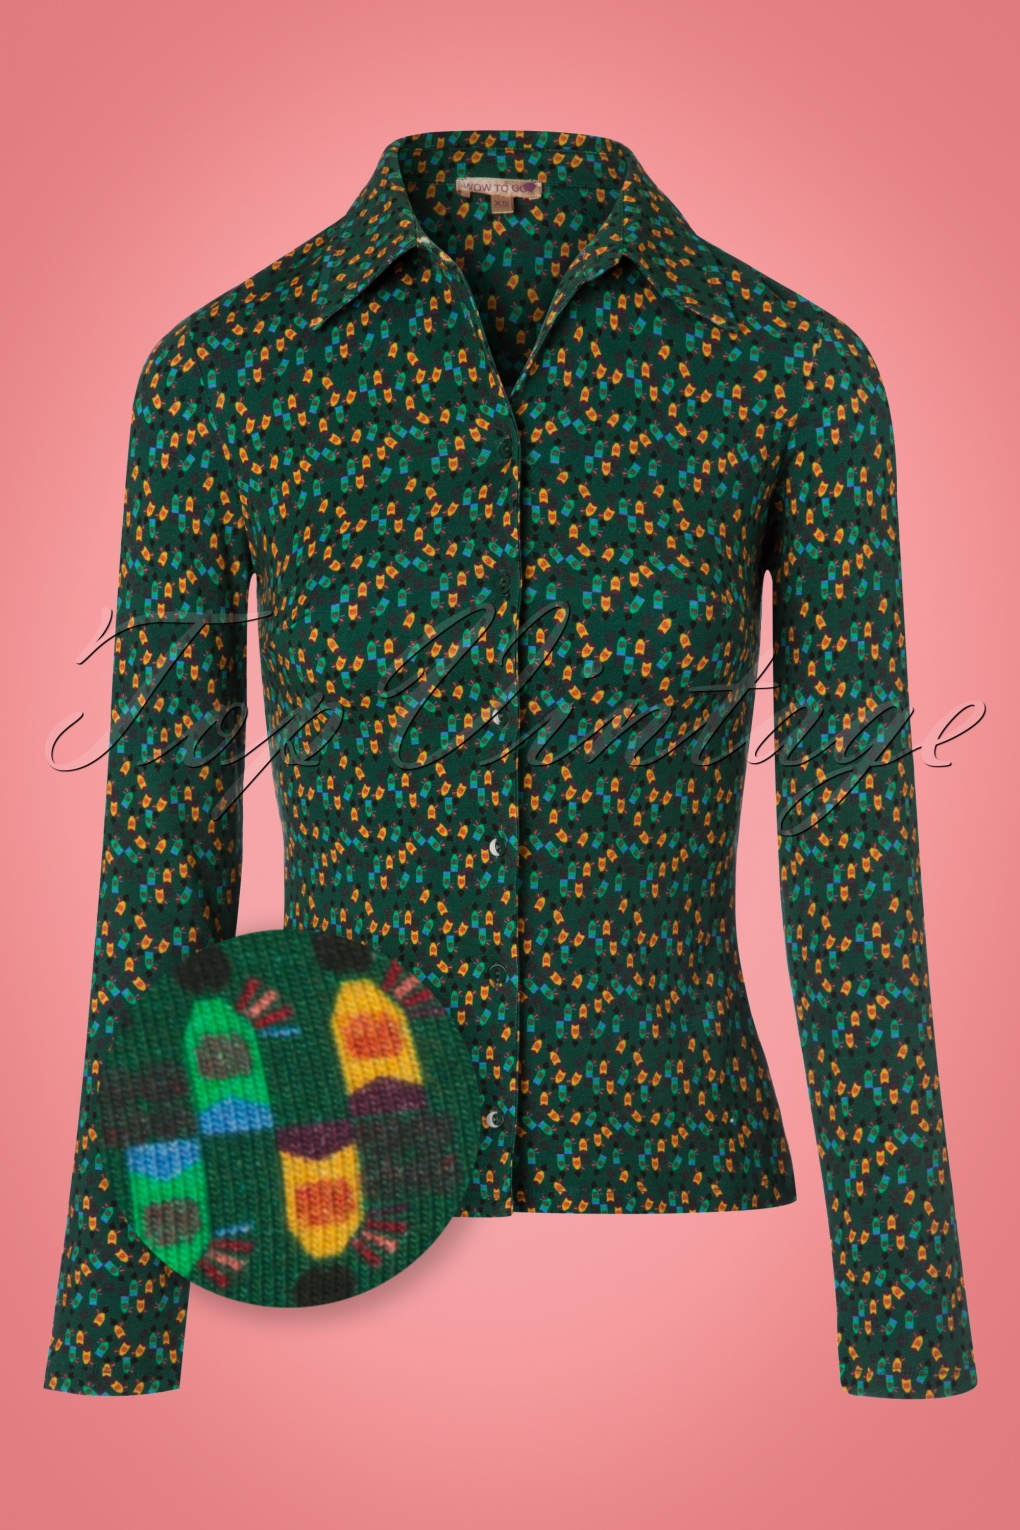 1960s -1970s Blouses, Shirts and Tops 60s Harakiri Blouse in Green £53.34 AT vintagedancer.com